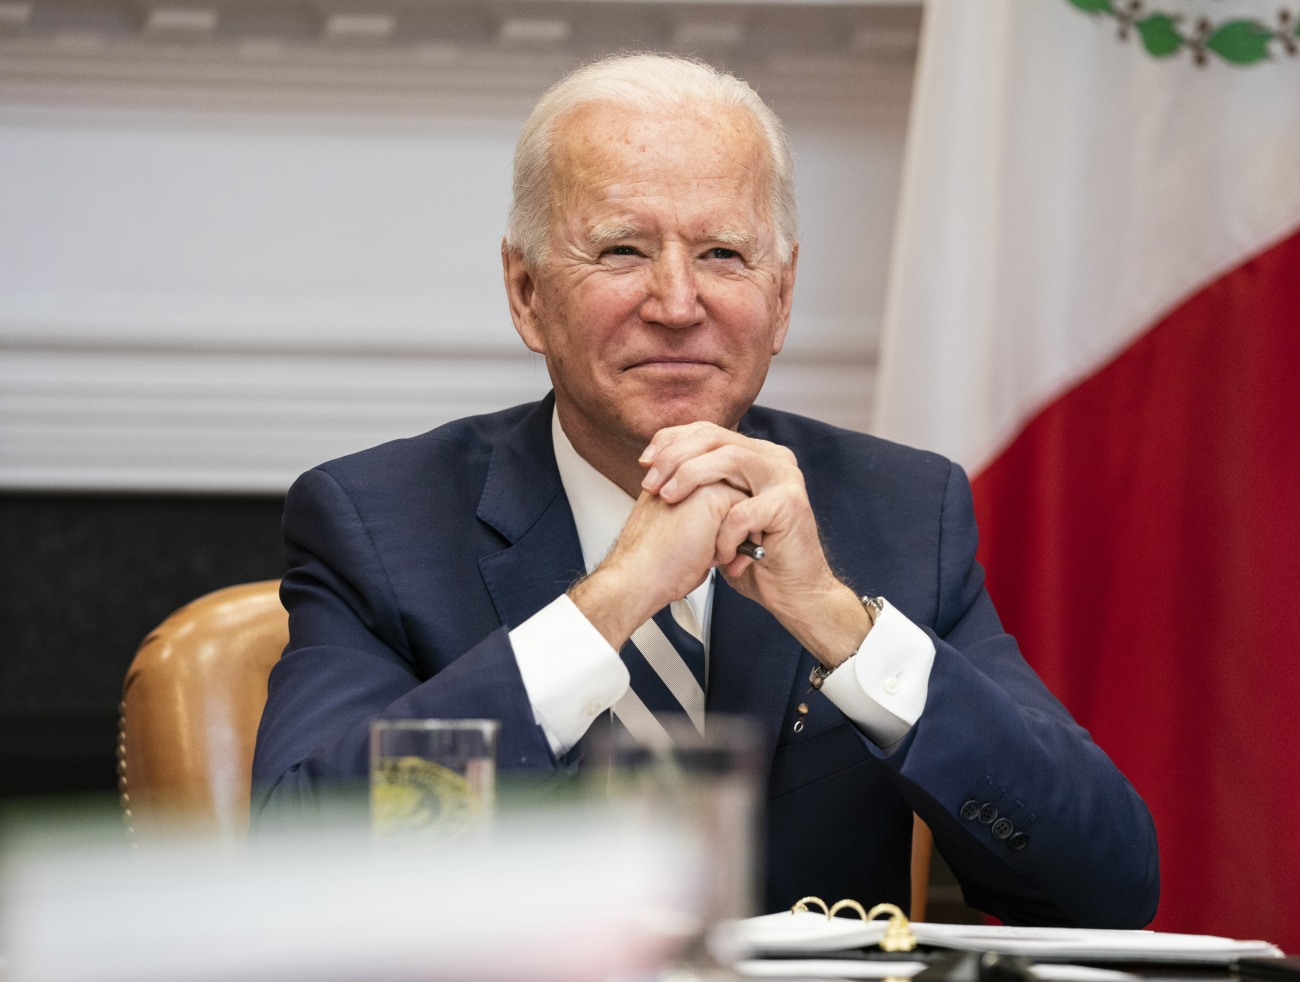 Biden Attends a Virtual Bilateral Meeting with President Obrador of Mexico